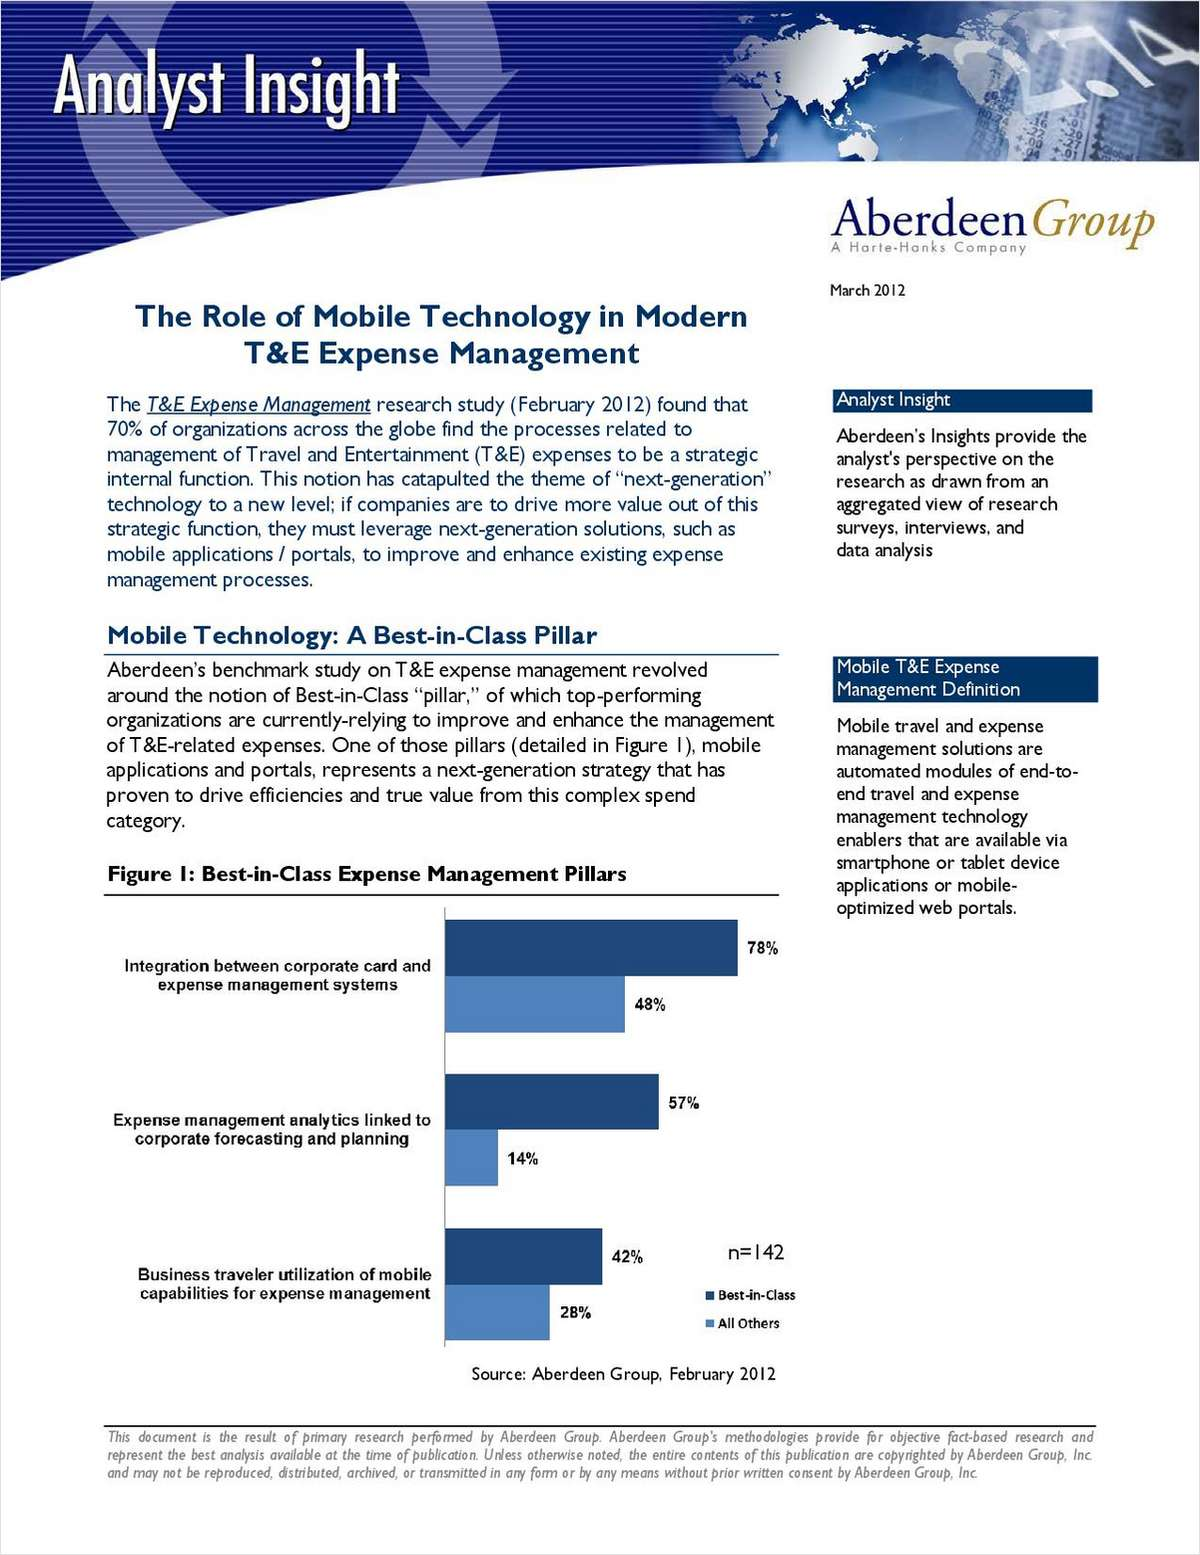 The Role of Mobile Technology in Modern T&E Expense Management